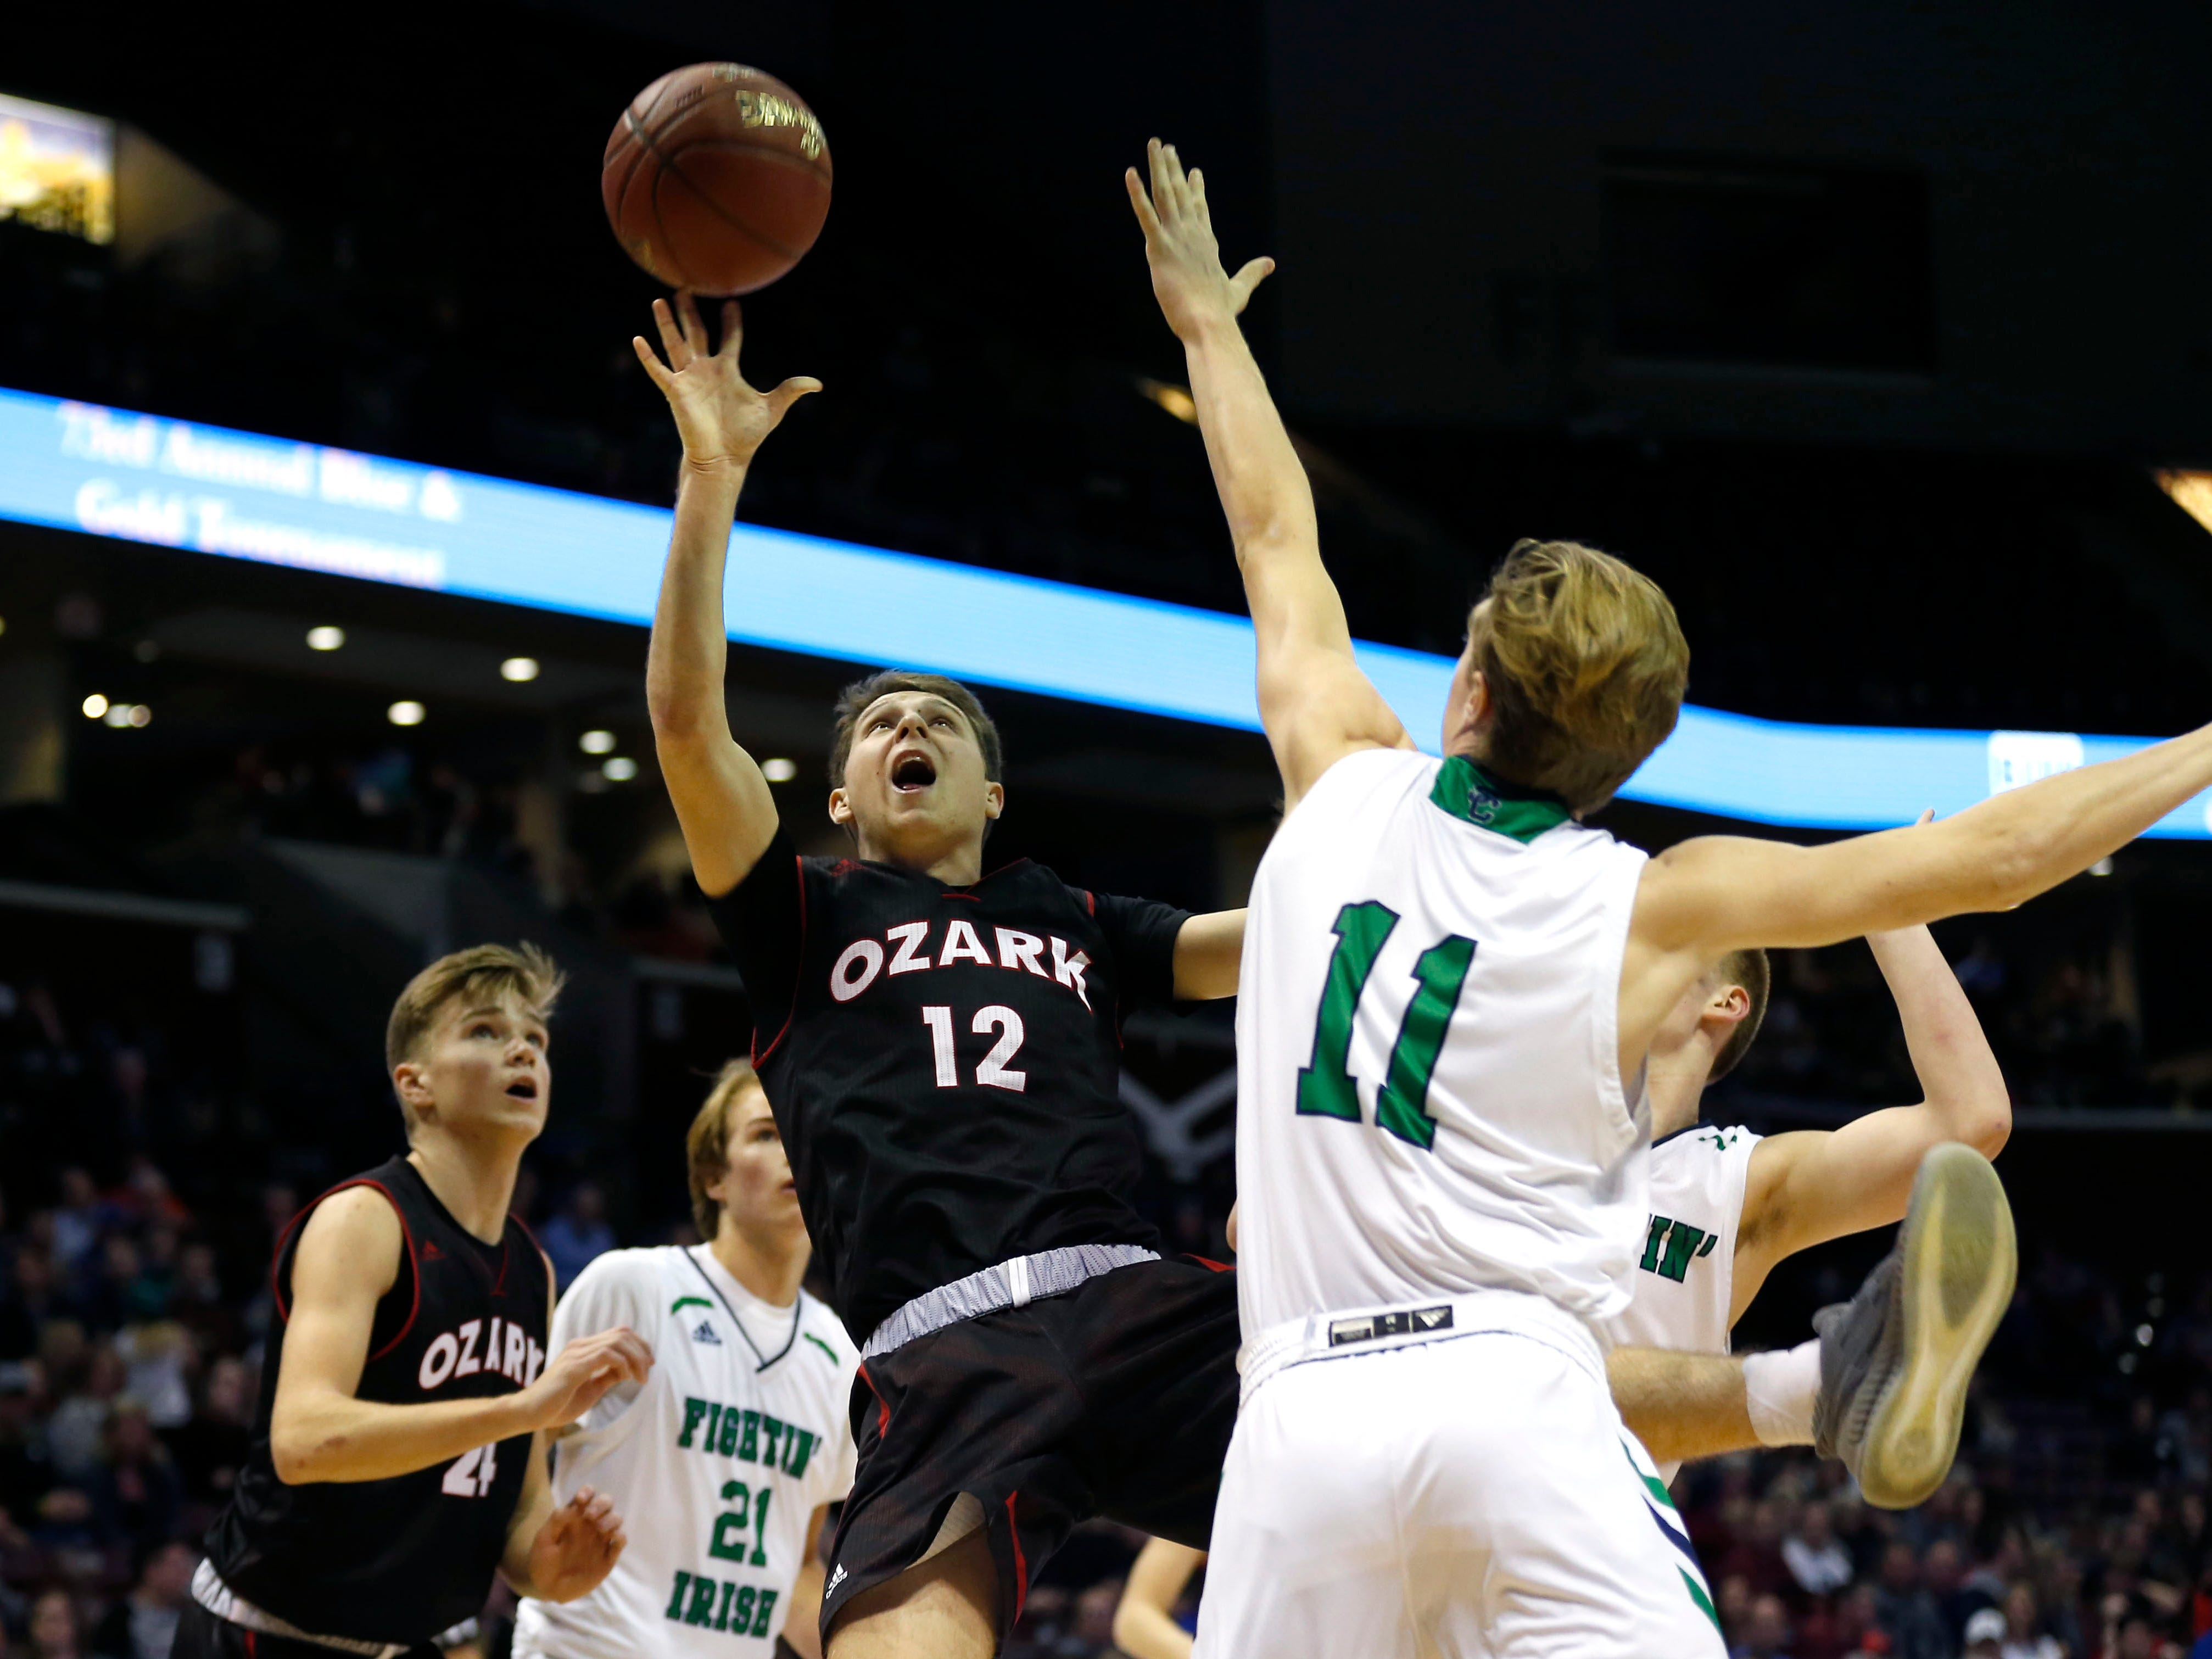 The Catholic Fighting Irish take on the Ozark Tigers in the championship Gold Division game during the 2018 Blue and Gold Tournament at JQH Arena on Saturday, Dec. 29, 2018.